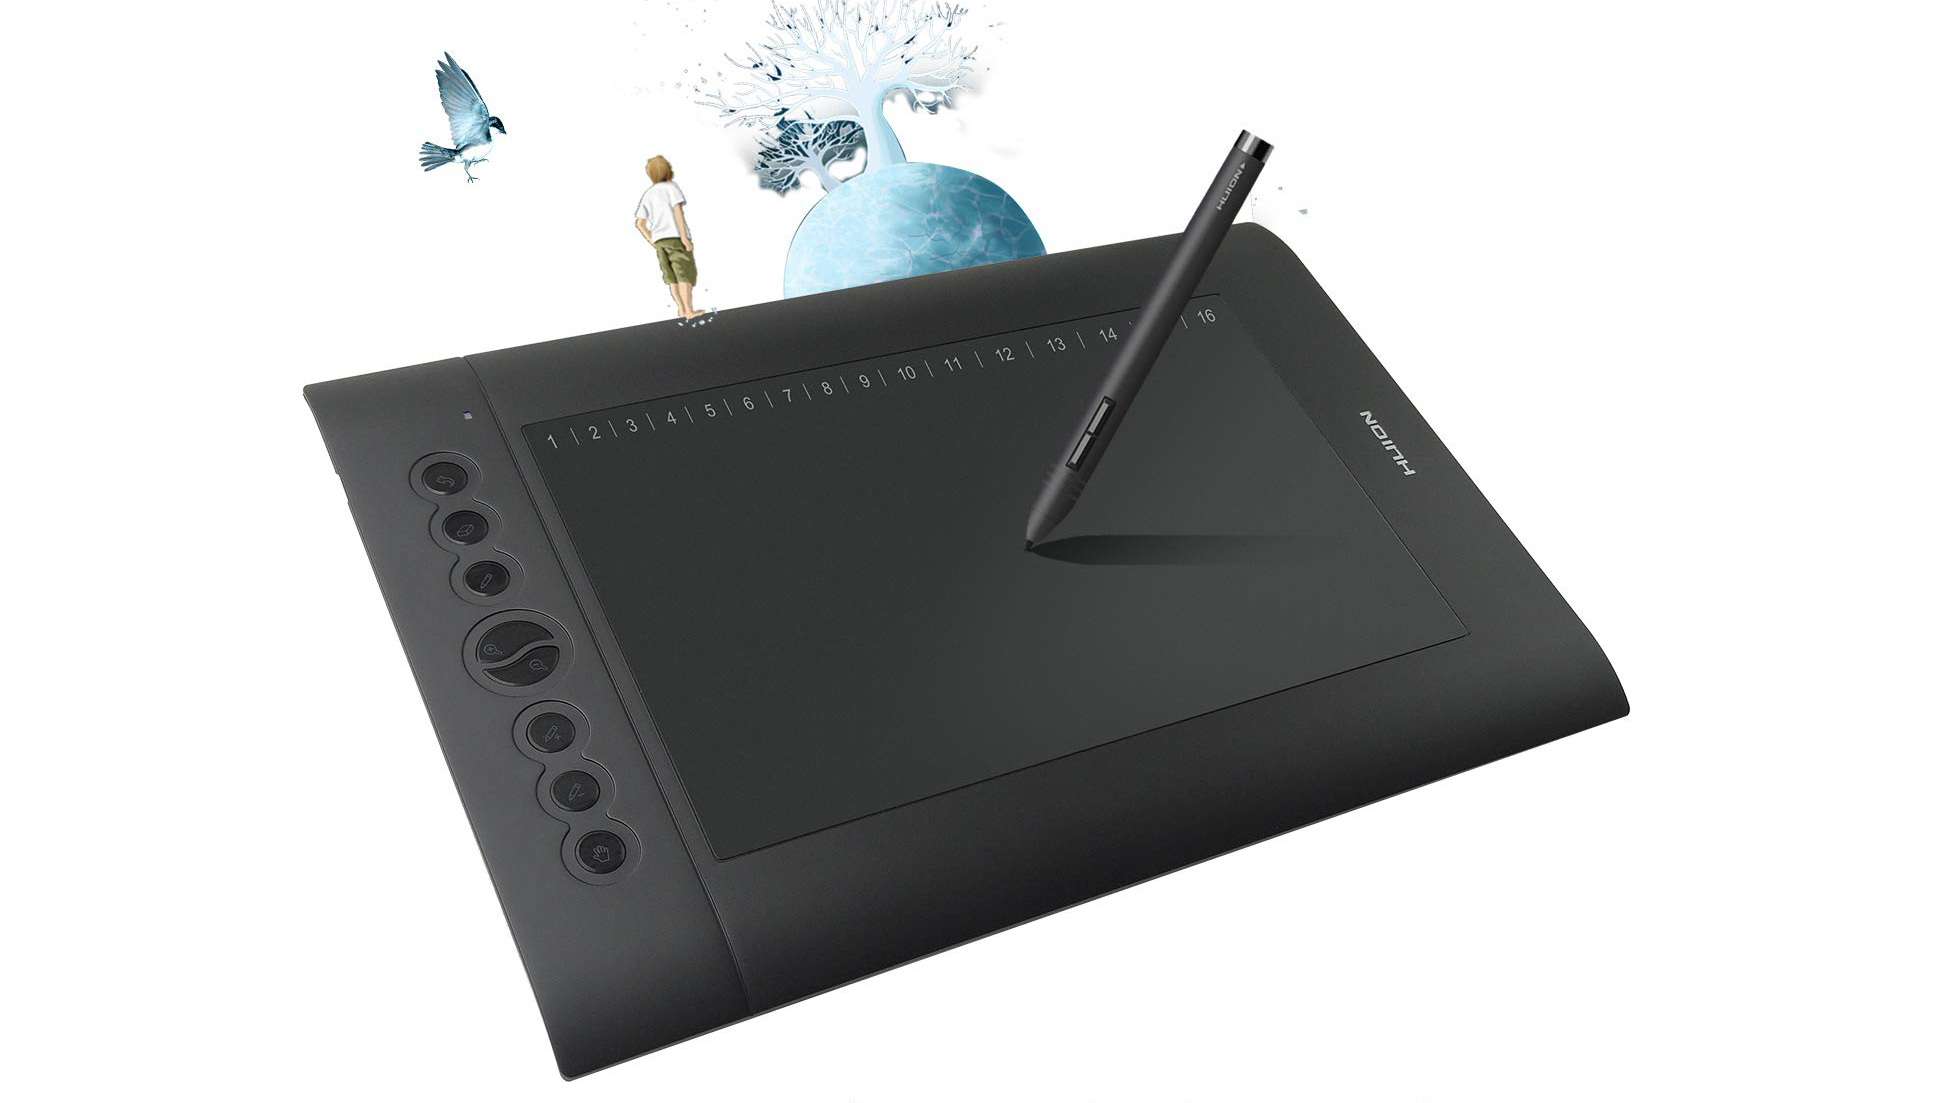 Grab this top-rated Huion graphics tablet for less than $60 | Creative Bloq